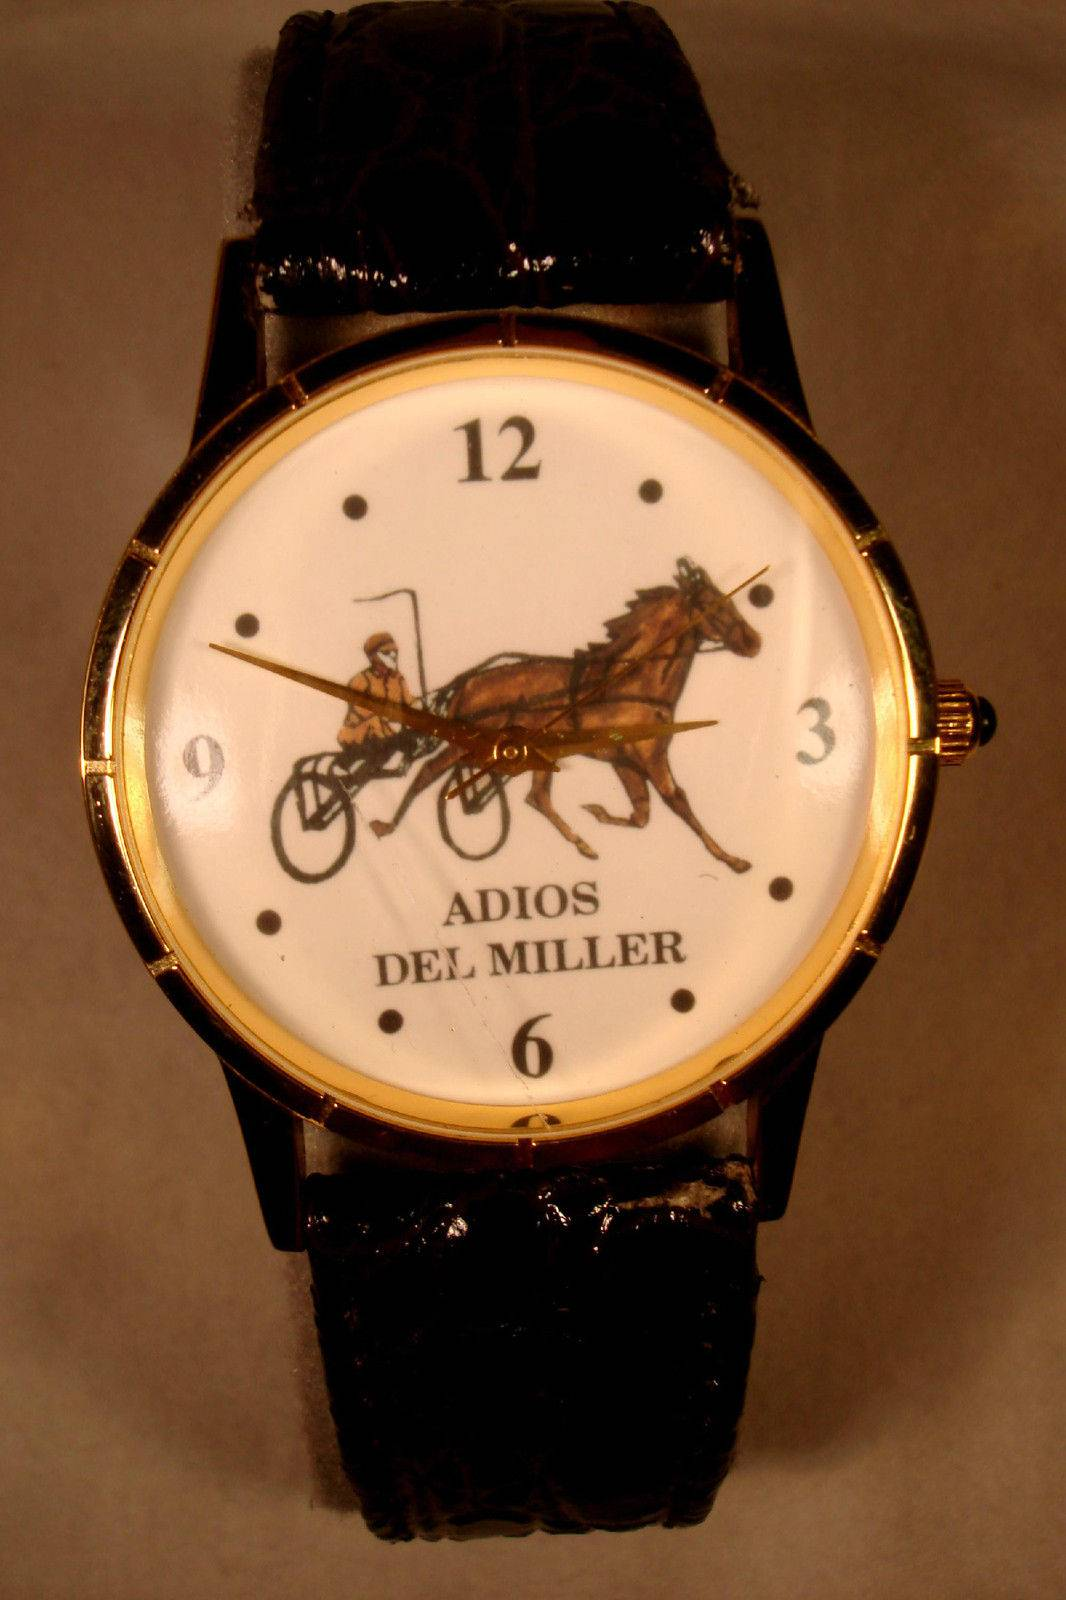 STAN MUSIAL'S Own ADIOS DEL MILLER Engraved Watch